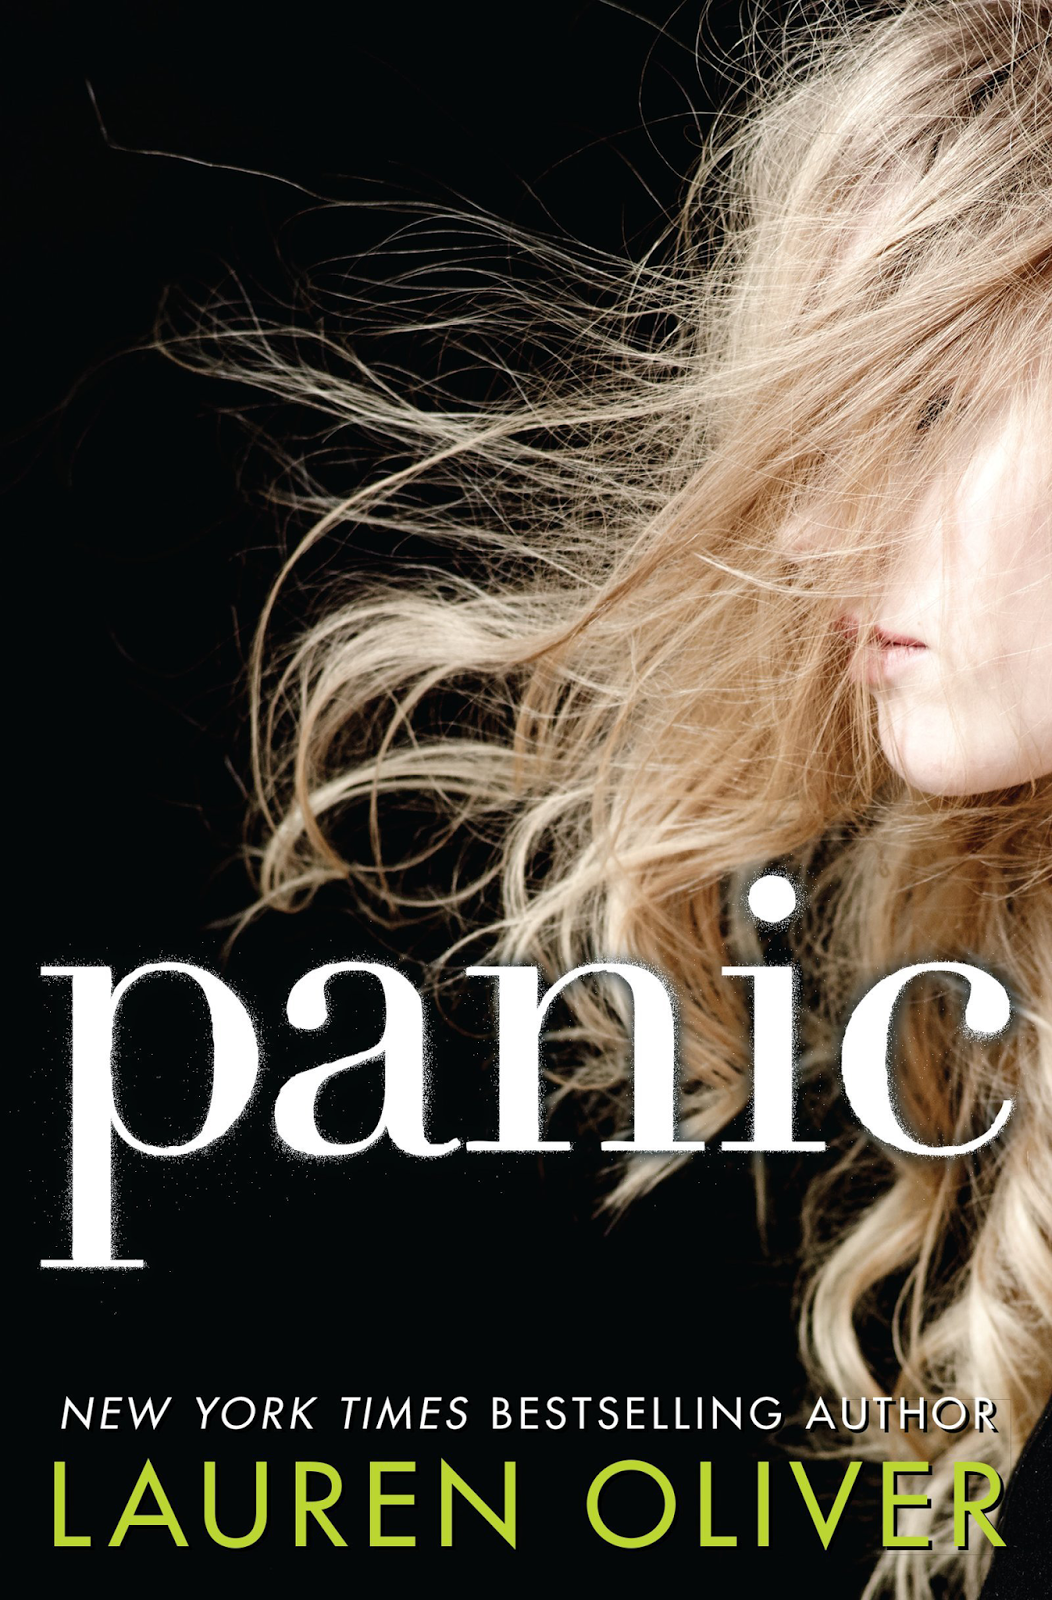 panic by lauren oliver ya young adult book contemporary mystery 2014 book cover large hd